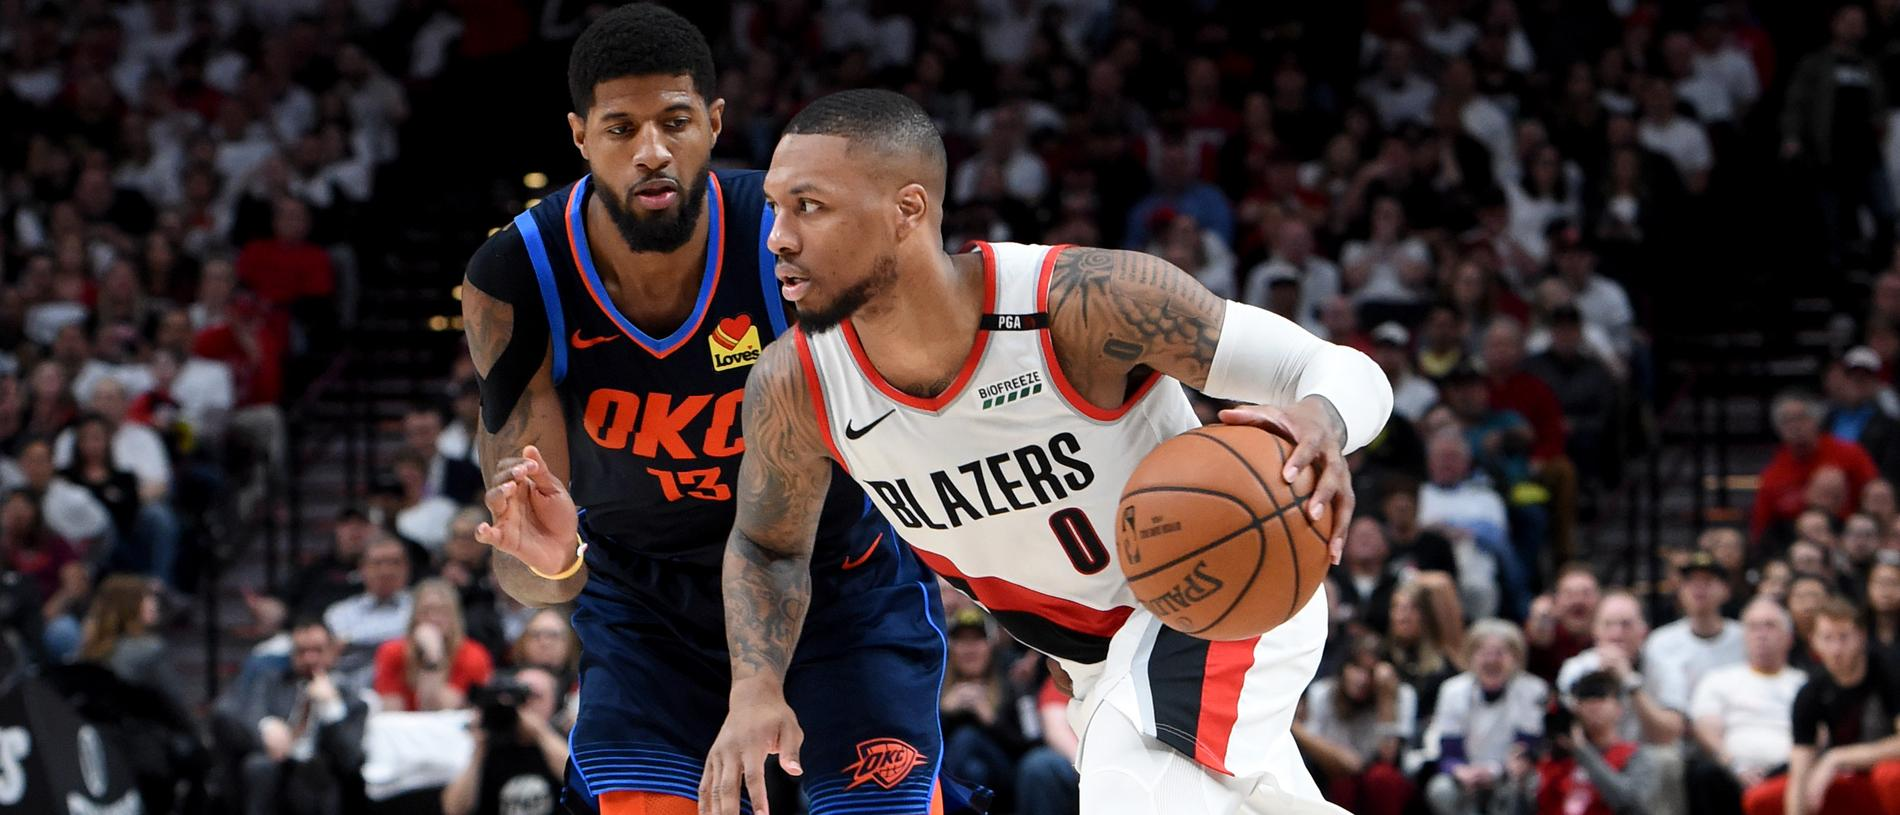 PORTLAND, OREGON - APRIL 23: Damian Lillard #0 of the Portland Trail Blazers drives to the basket on Paul George #13 of the Oklahoma City Thunder during the second half of Game Five of the Western Conference quarterfinals during the 2019 NBA Playoffs at Moda Center on April 23, 2019 in Portland, Oregon. The Blazers won 118-115. NOTE TO USER: User expressly acknowledges and agrees that, by downloading and or using this photograph, User is consenting to the terms and conditions of the Getty Images License Agreement. (Photo by Steve Dykes/Getty Images)